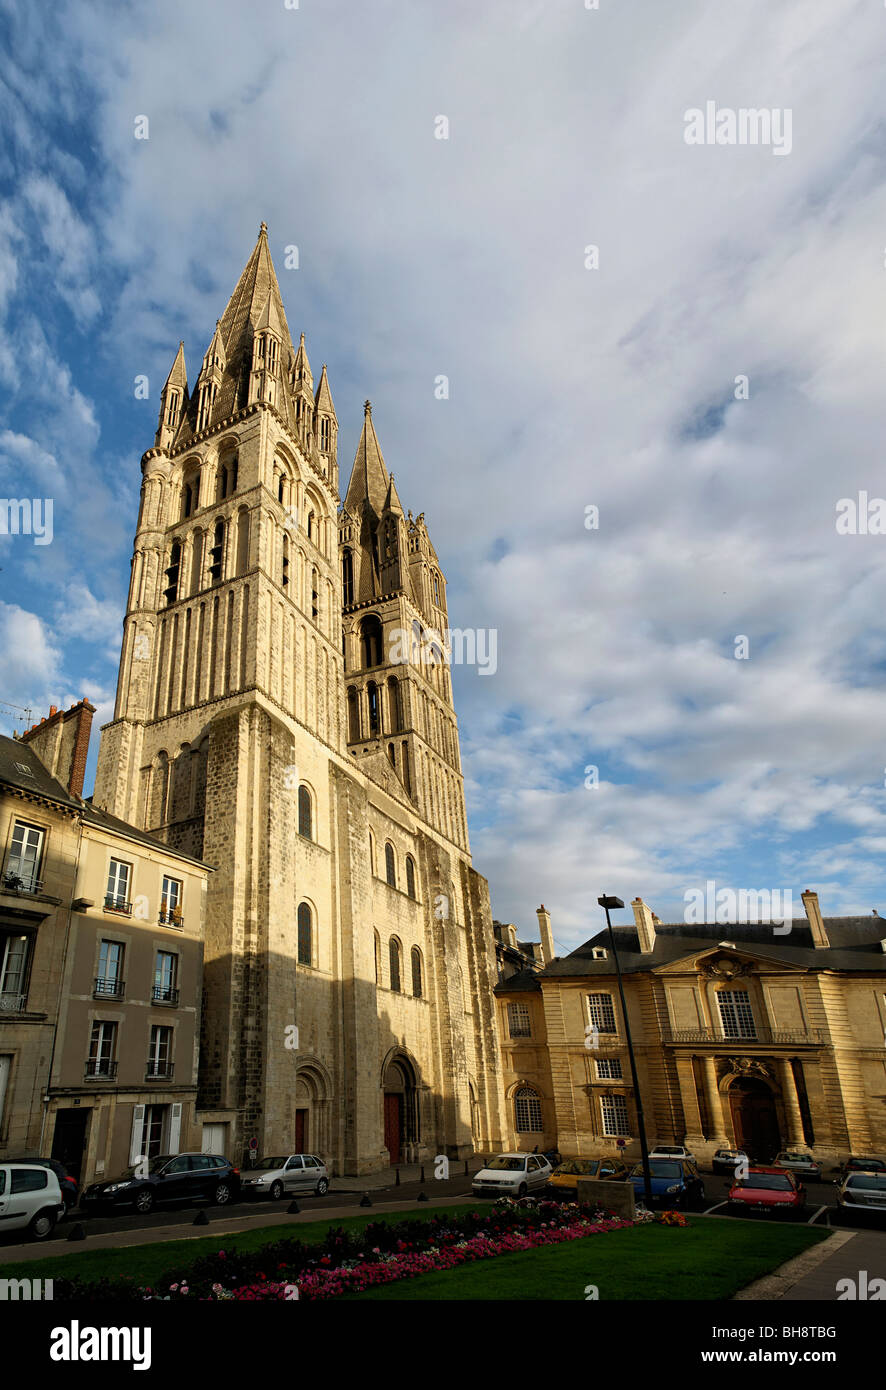 St Etienne Abbey in the city of Caen - Stock Image